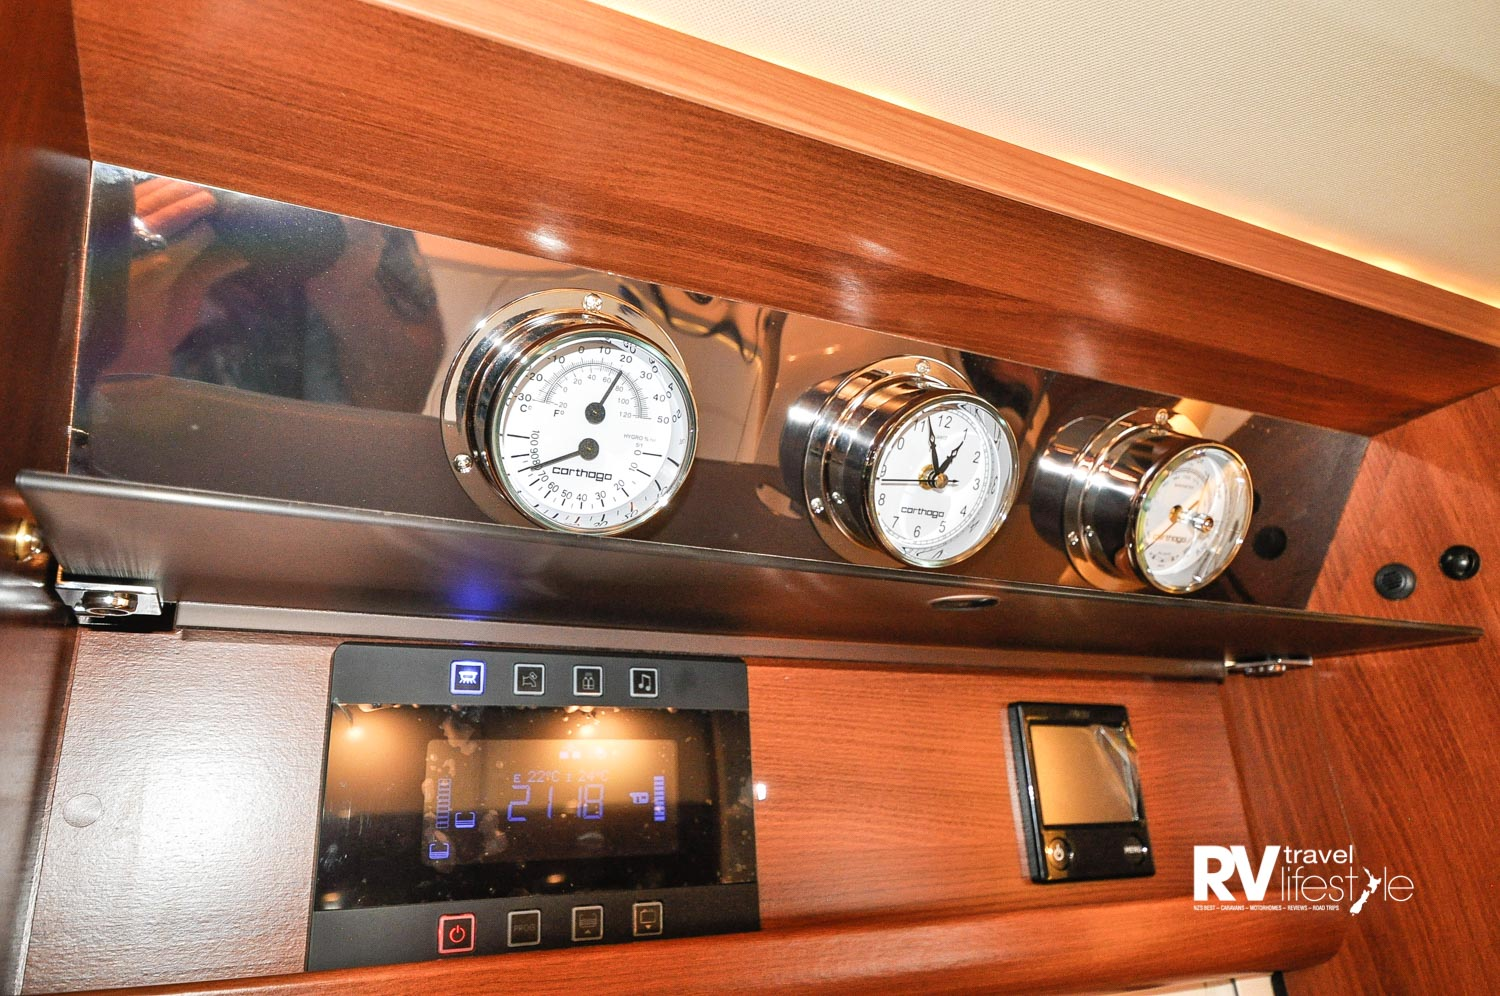 A nautical theme to the large easy-read dials, monitors and controls all in one area above the entry door